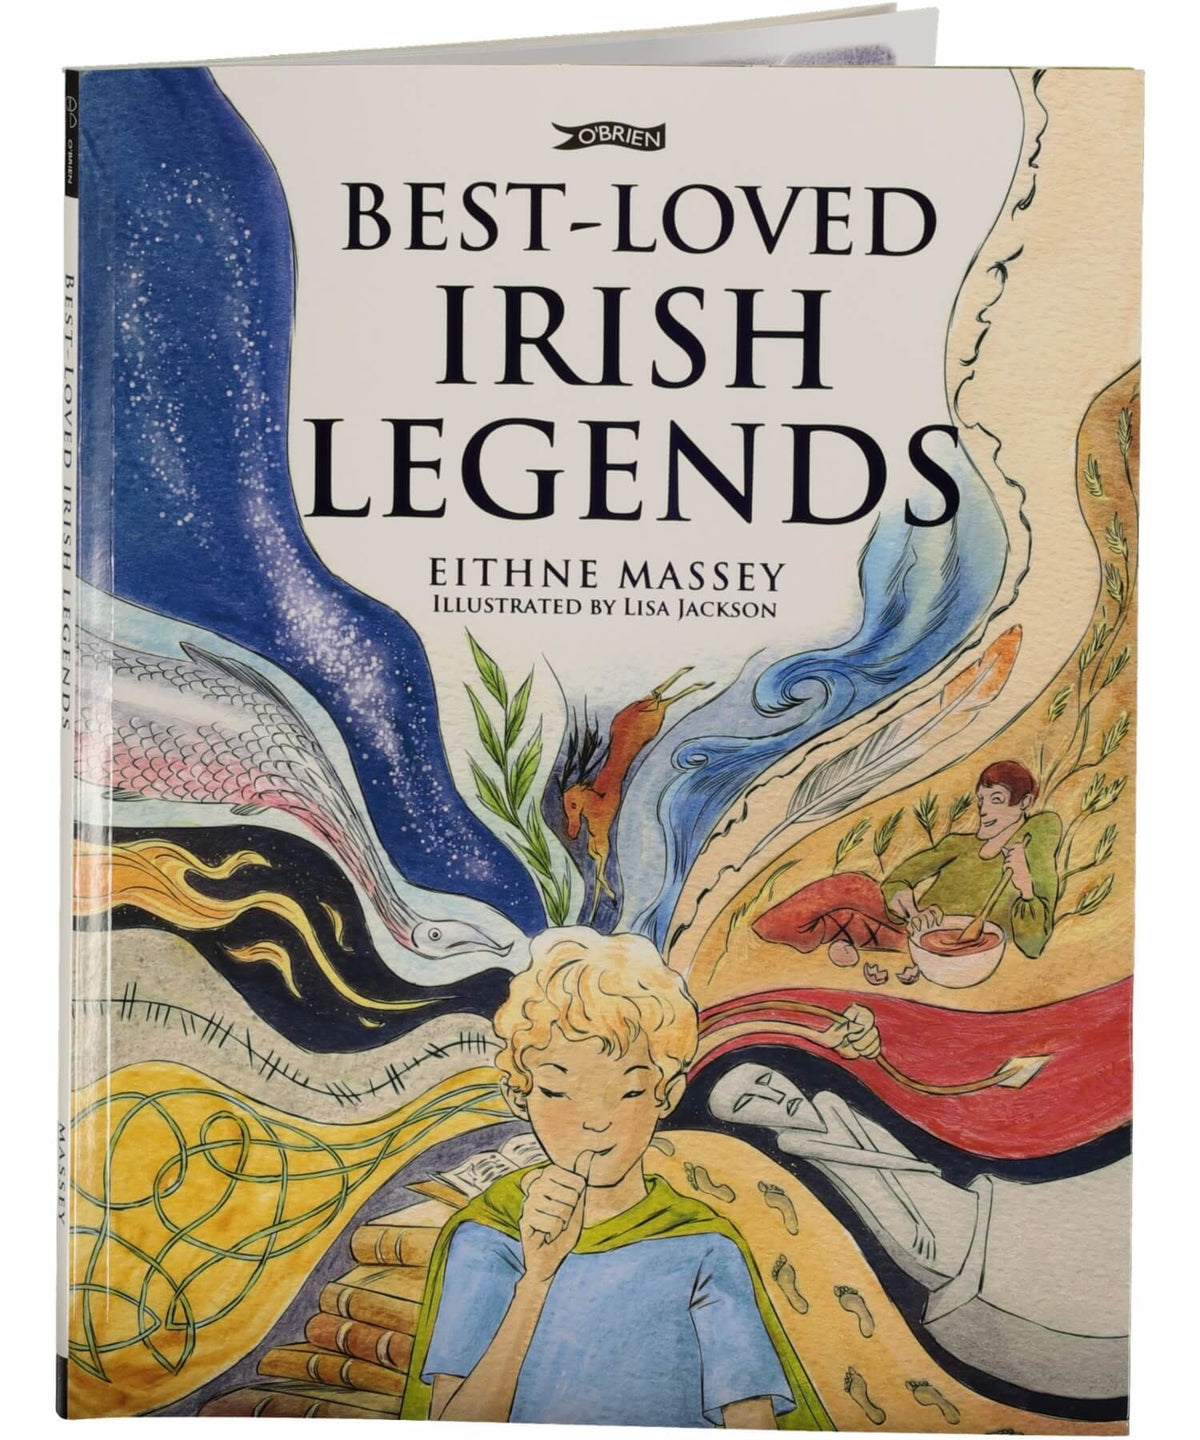 Best Loved Irish Legends - [The O'Brien Press] - Books & Stationery - Irish Gifts